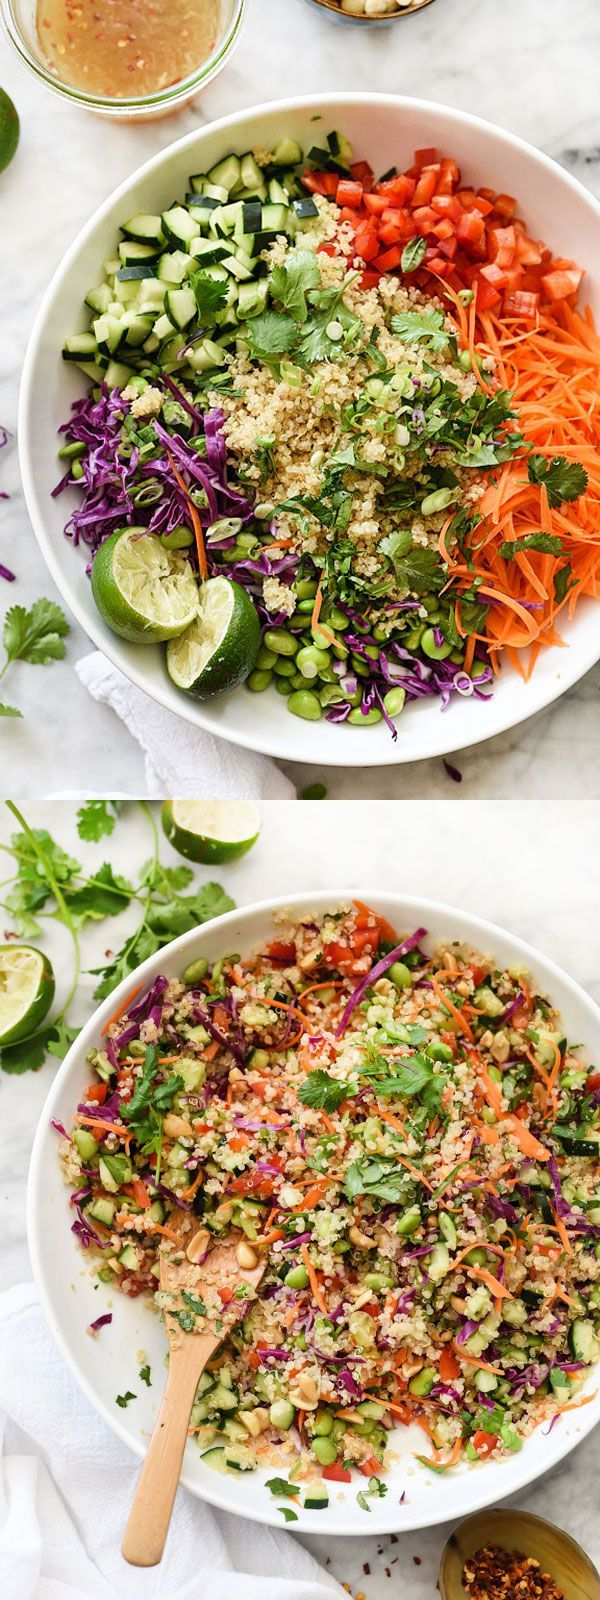 This gluten-free, veg heavy, protein packed salad is one of my new favorite…